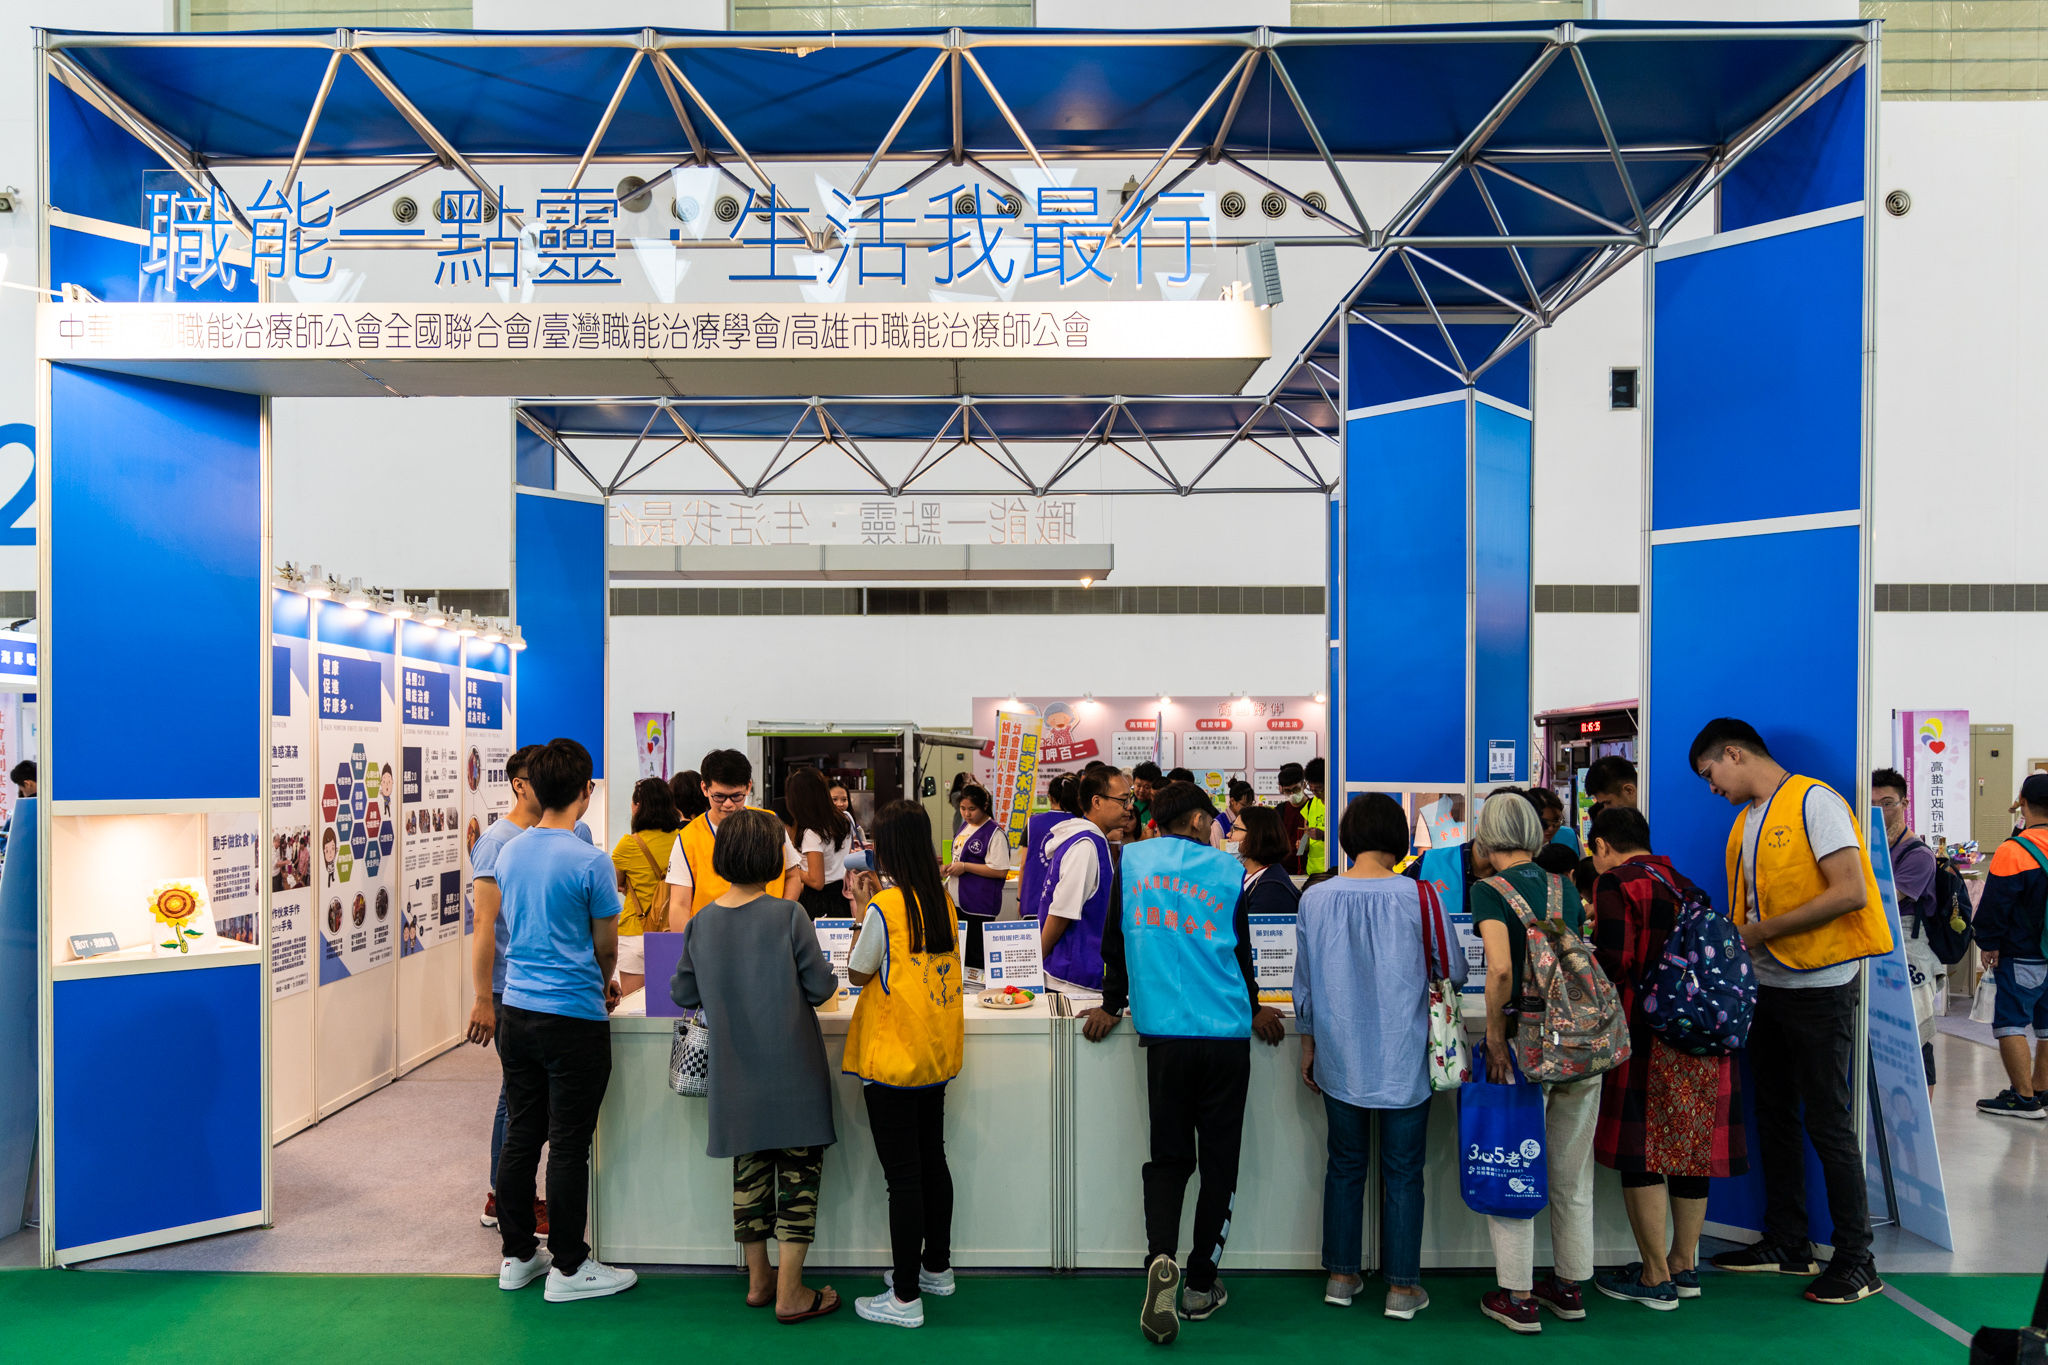 https://storage.googleapis.com/www.taiwantradeshow.com.tw/activity-photo/202004/T-55875626-name.jpg